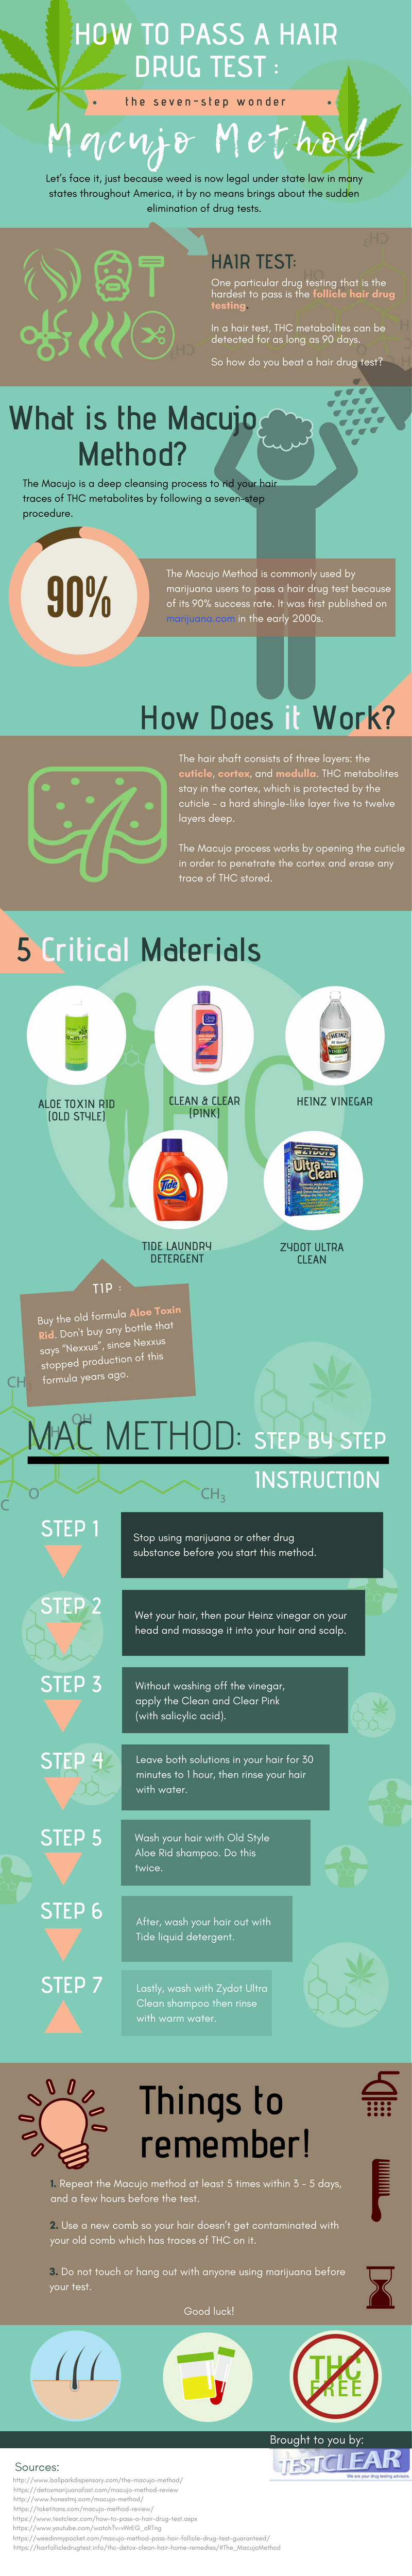 Macujo Hair Cleansing Guide Infographic